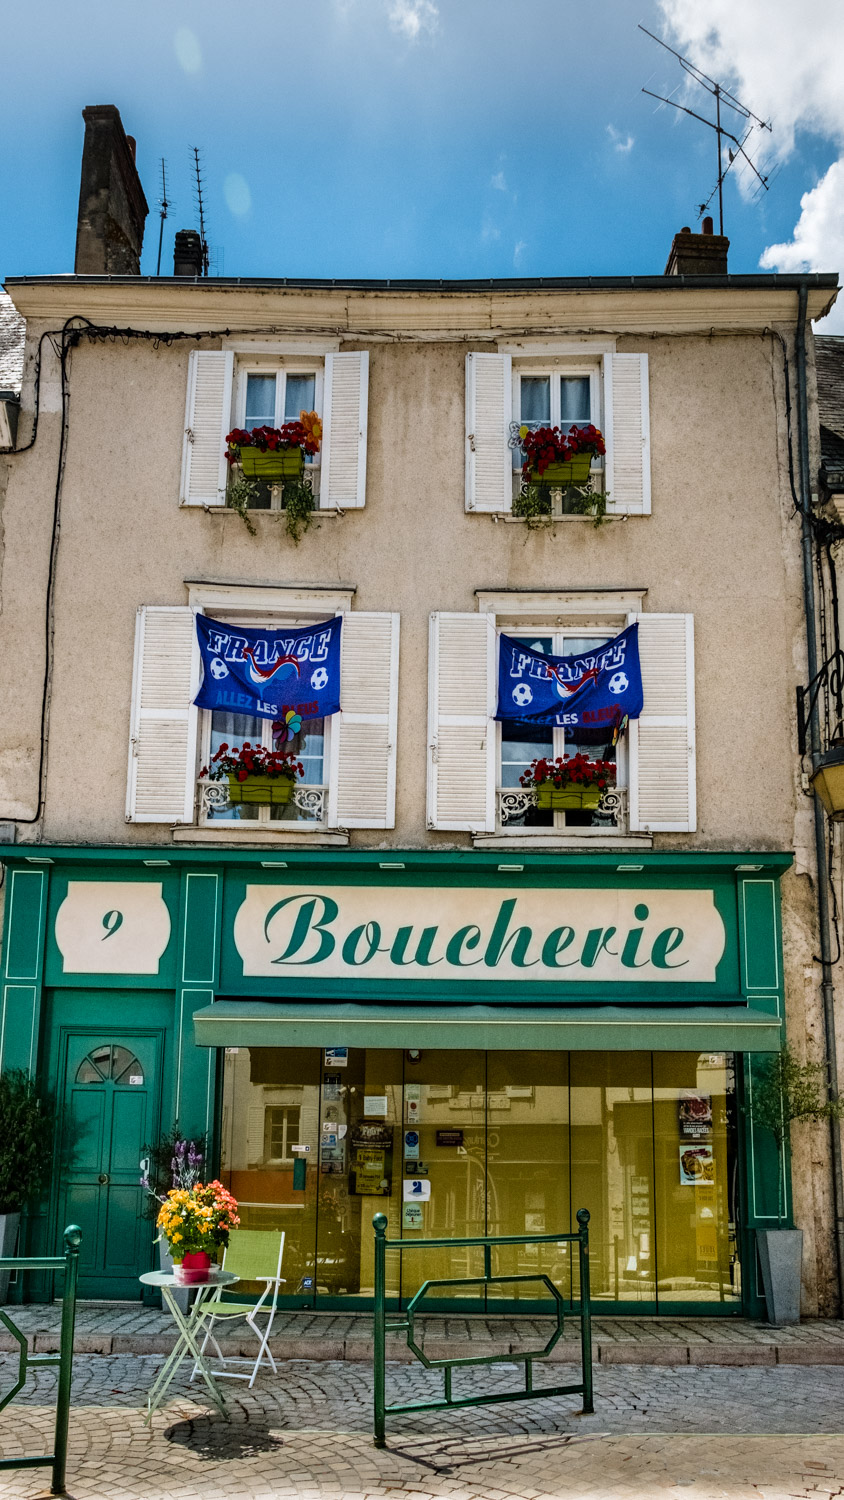 French football flags above a boucherie in Beaugency